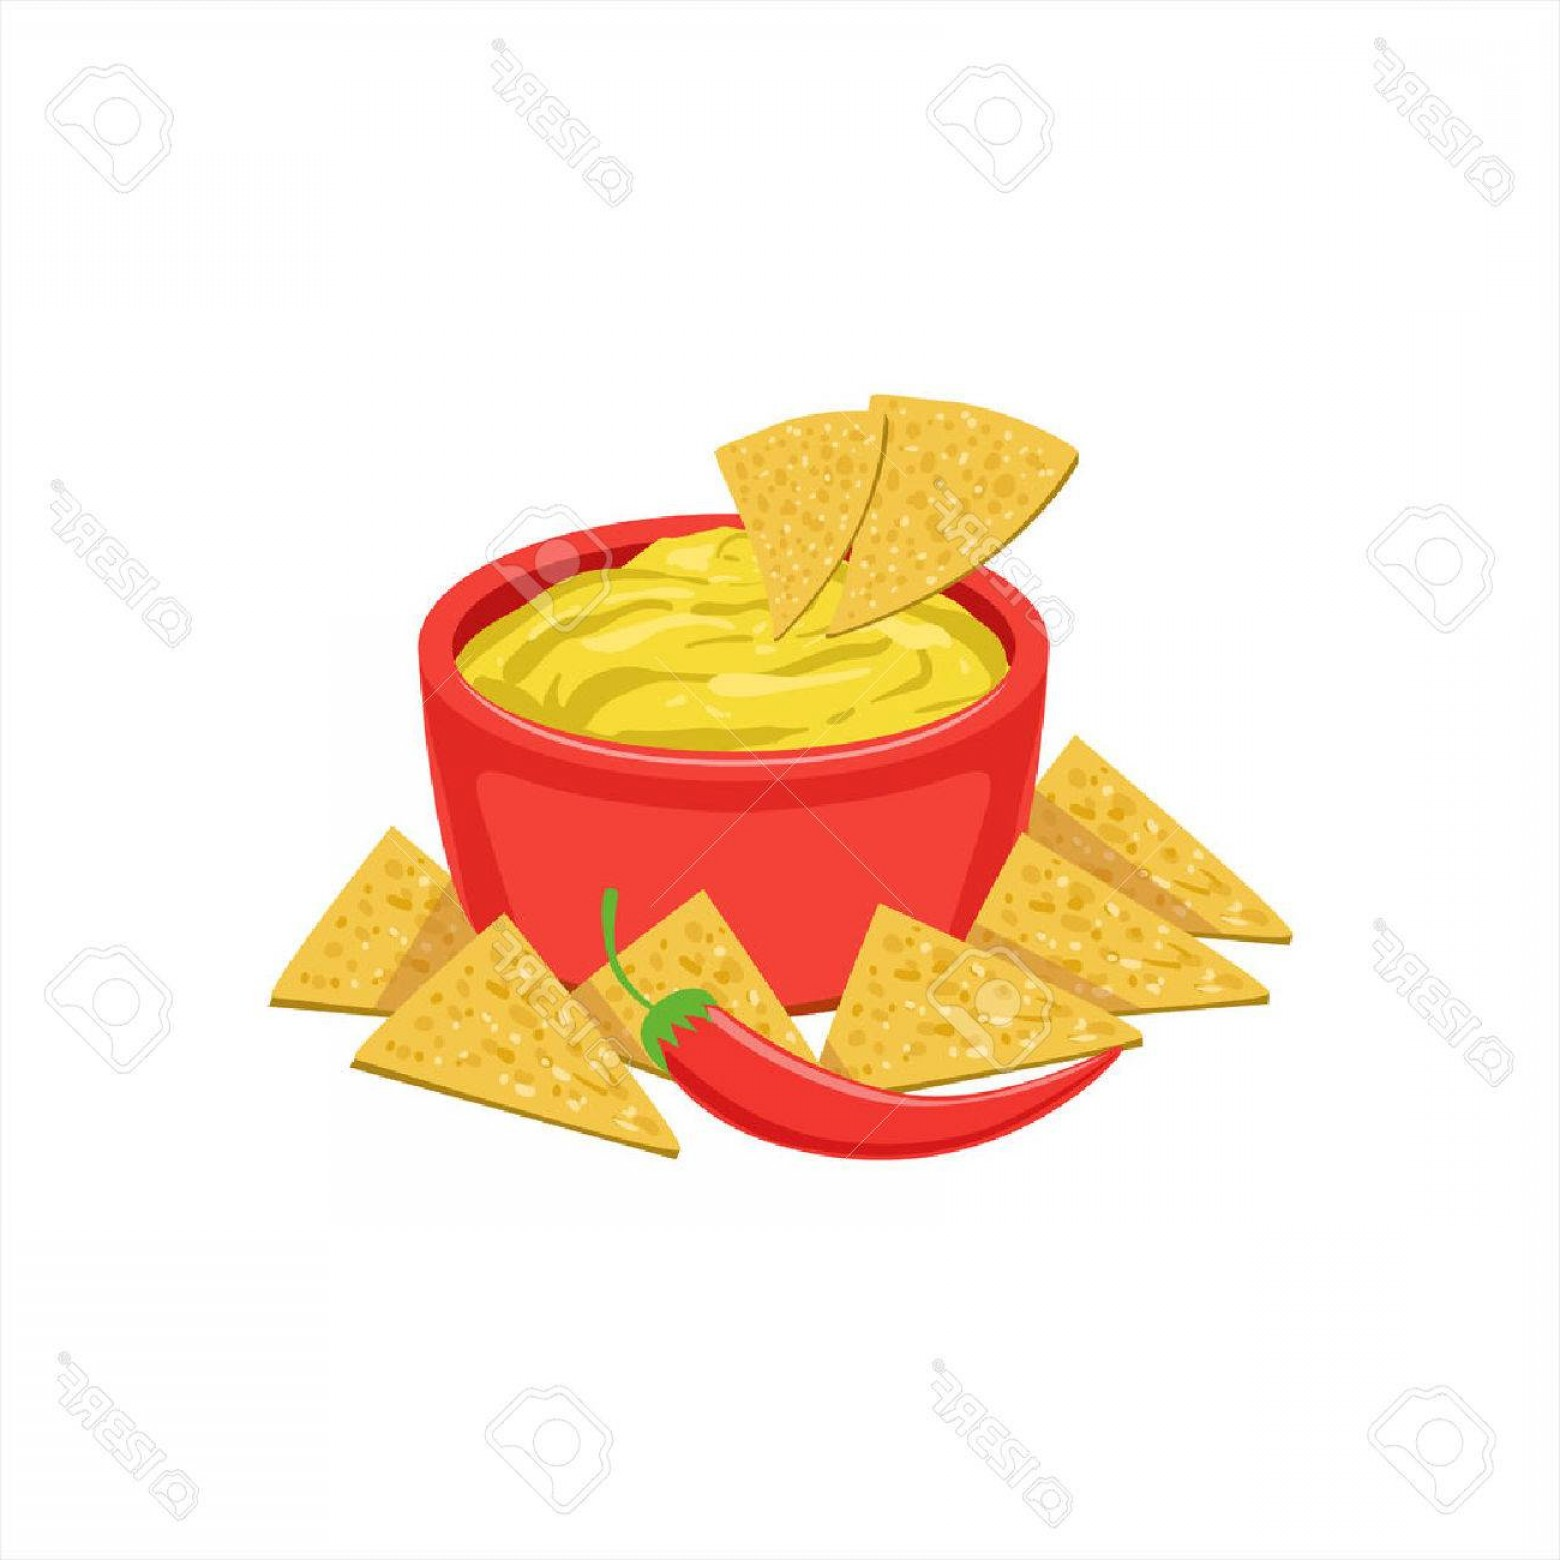 Chips Queso Vector: Photostock Vector Nachos Chips With Cheese Dip Traditional Mexican Cuisine Dish Food Item From Cafe Menu Vector Illust